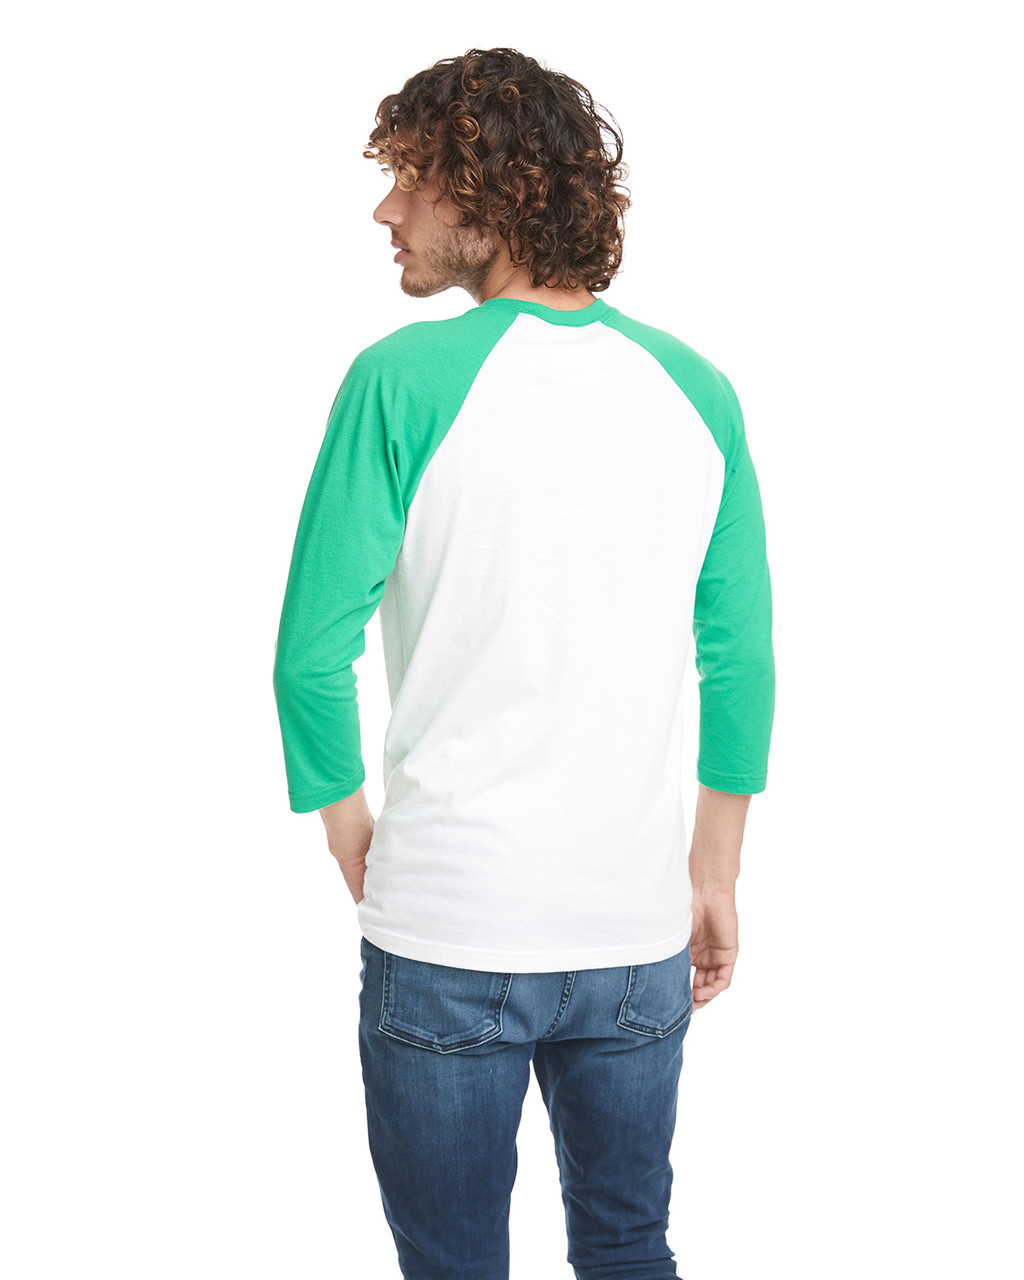 Kelly Green/White - Back, 6251 Next Level Unisex CVC 3/4 Sleeve Raglan Baseball T-Shirt | BlankClothing.ca